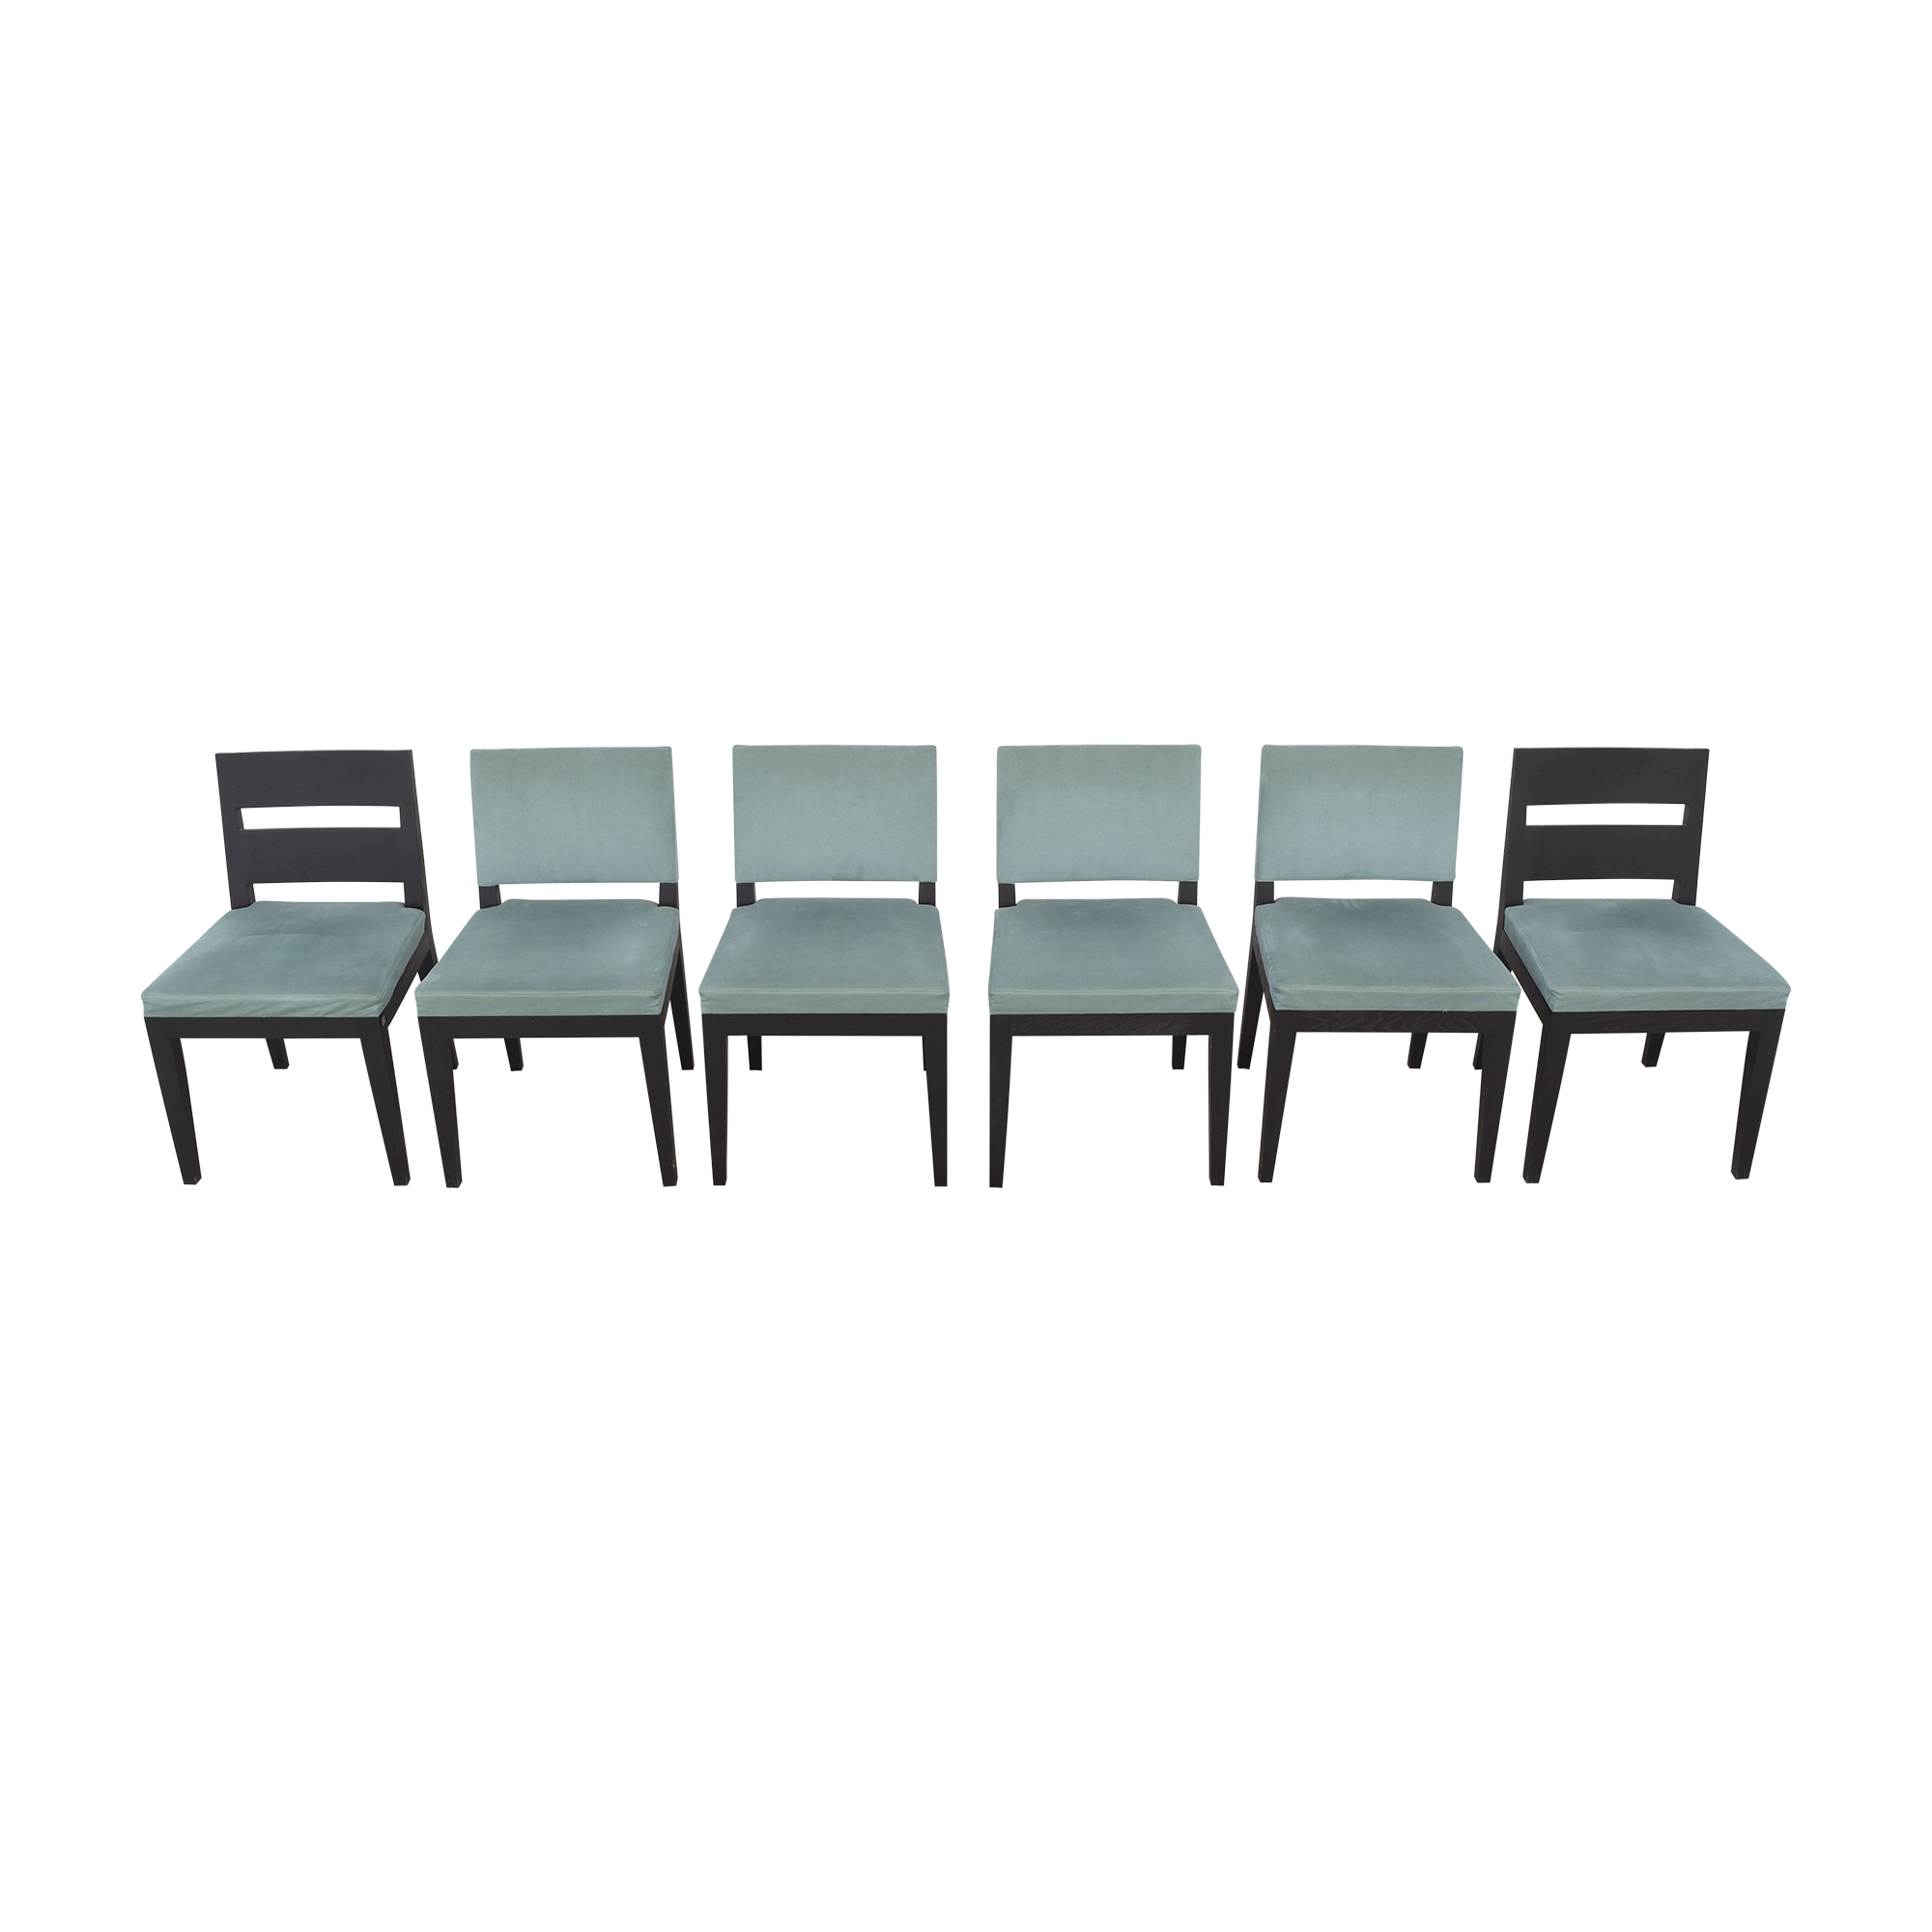 Desiron Turner Dining Chairs / Chairs